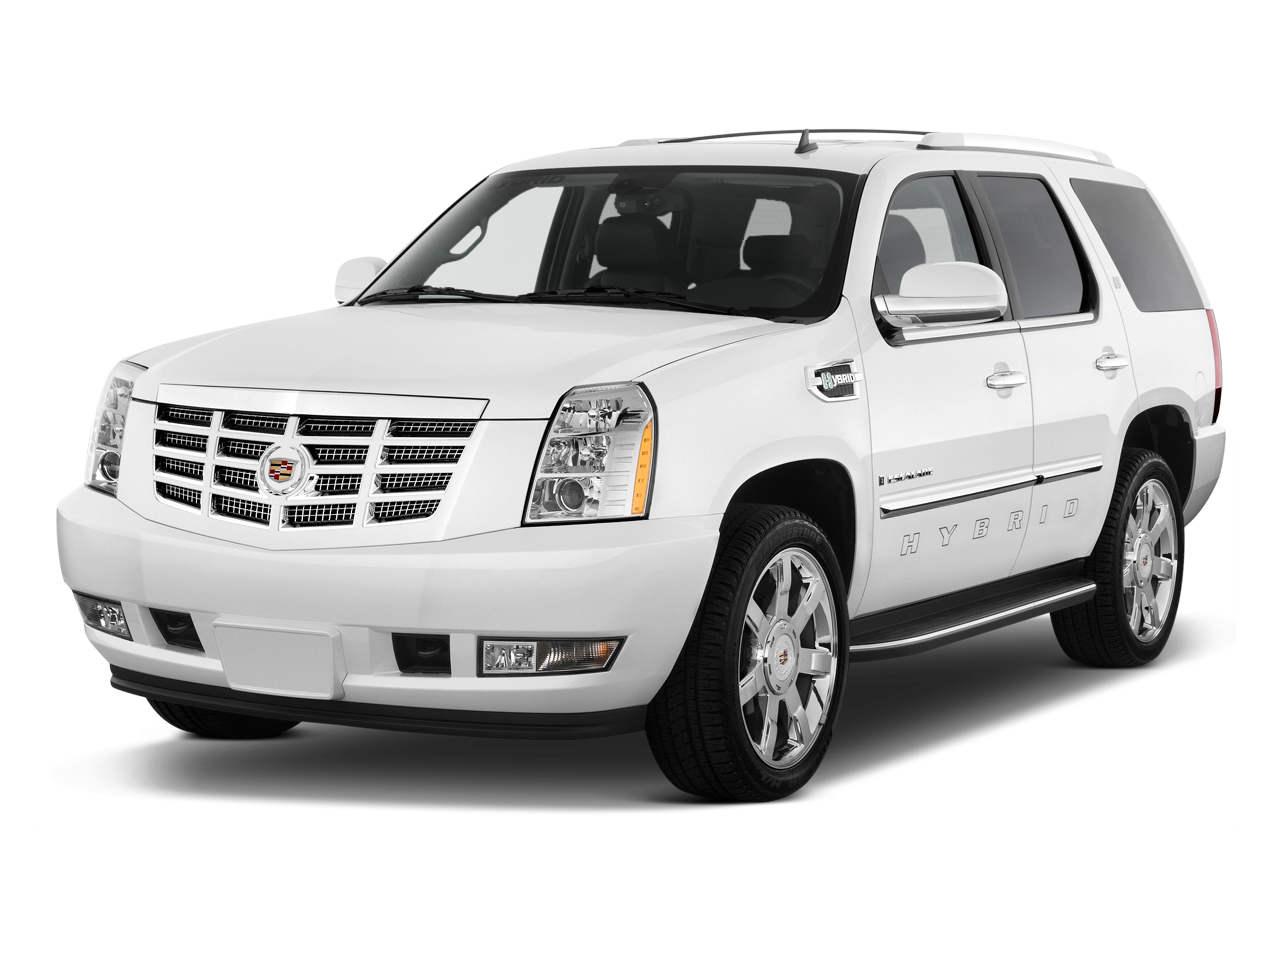 2009 cadillac escalade hybrid first drive cadillac. Black Bedroom Furniture Sets. Home Design Ideas